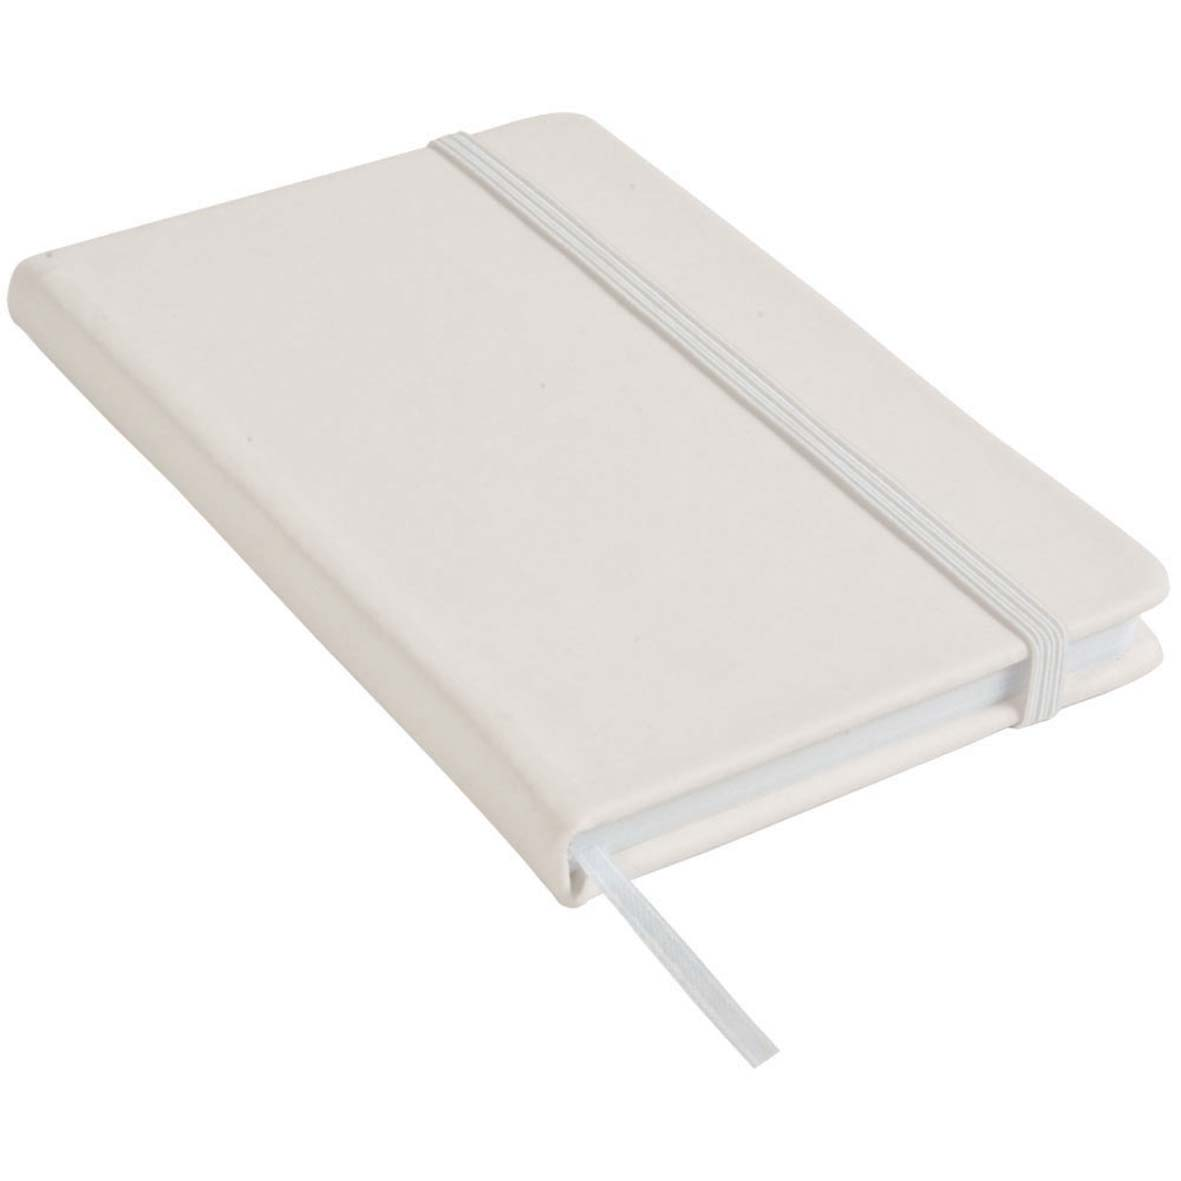 Note book with PU cover and elastic band for closing - White  sip-1441401